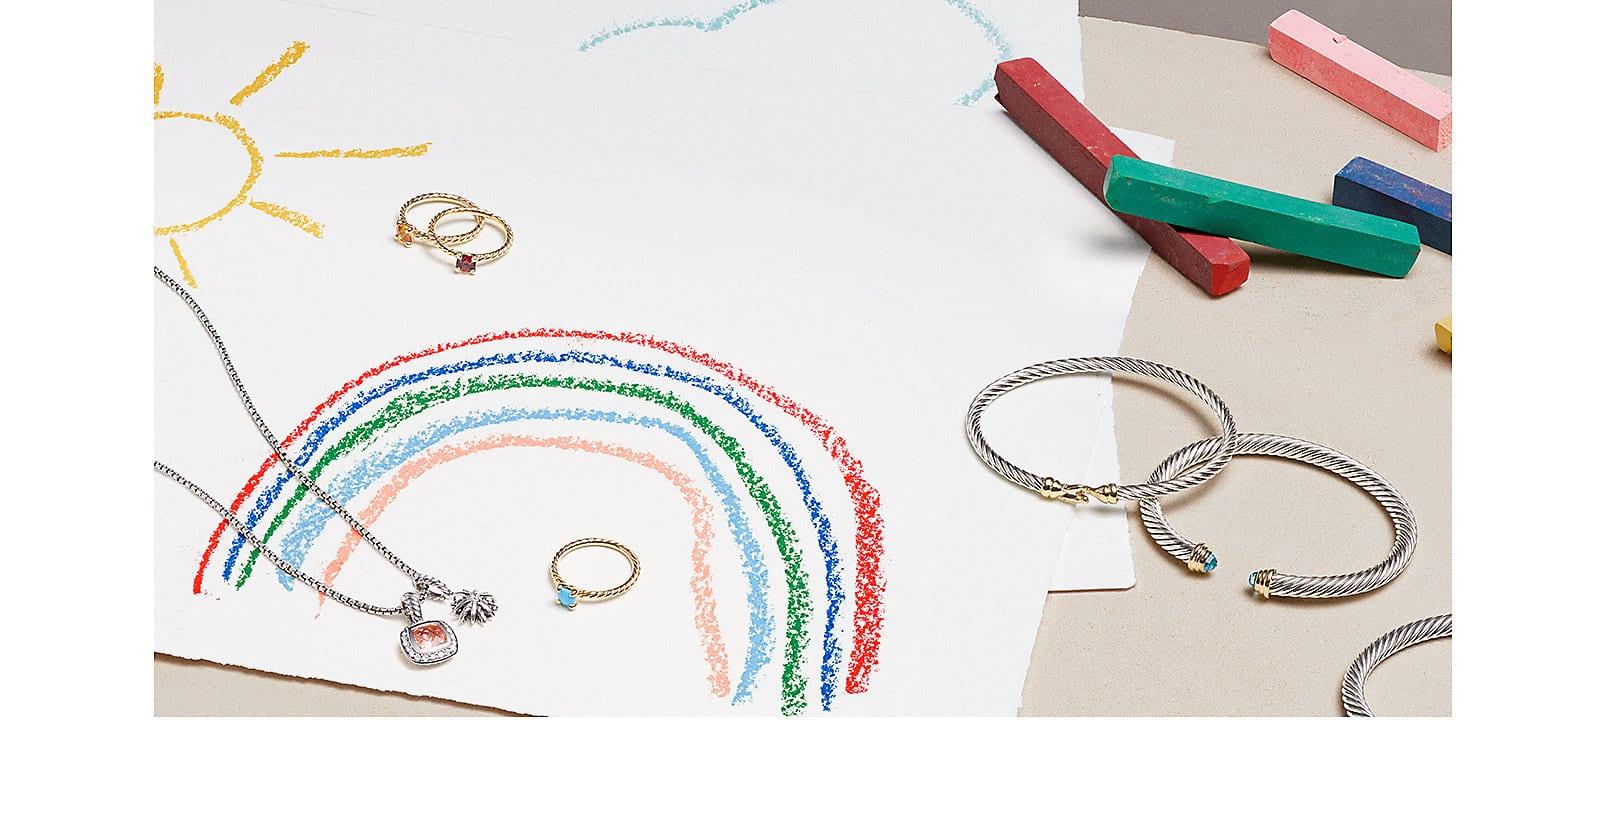 David Yurman jewelry and a children's drawing.